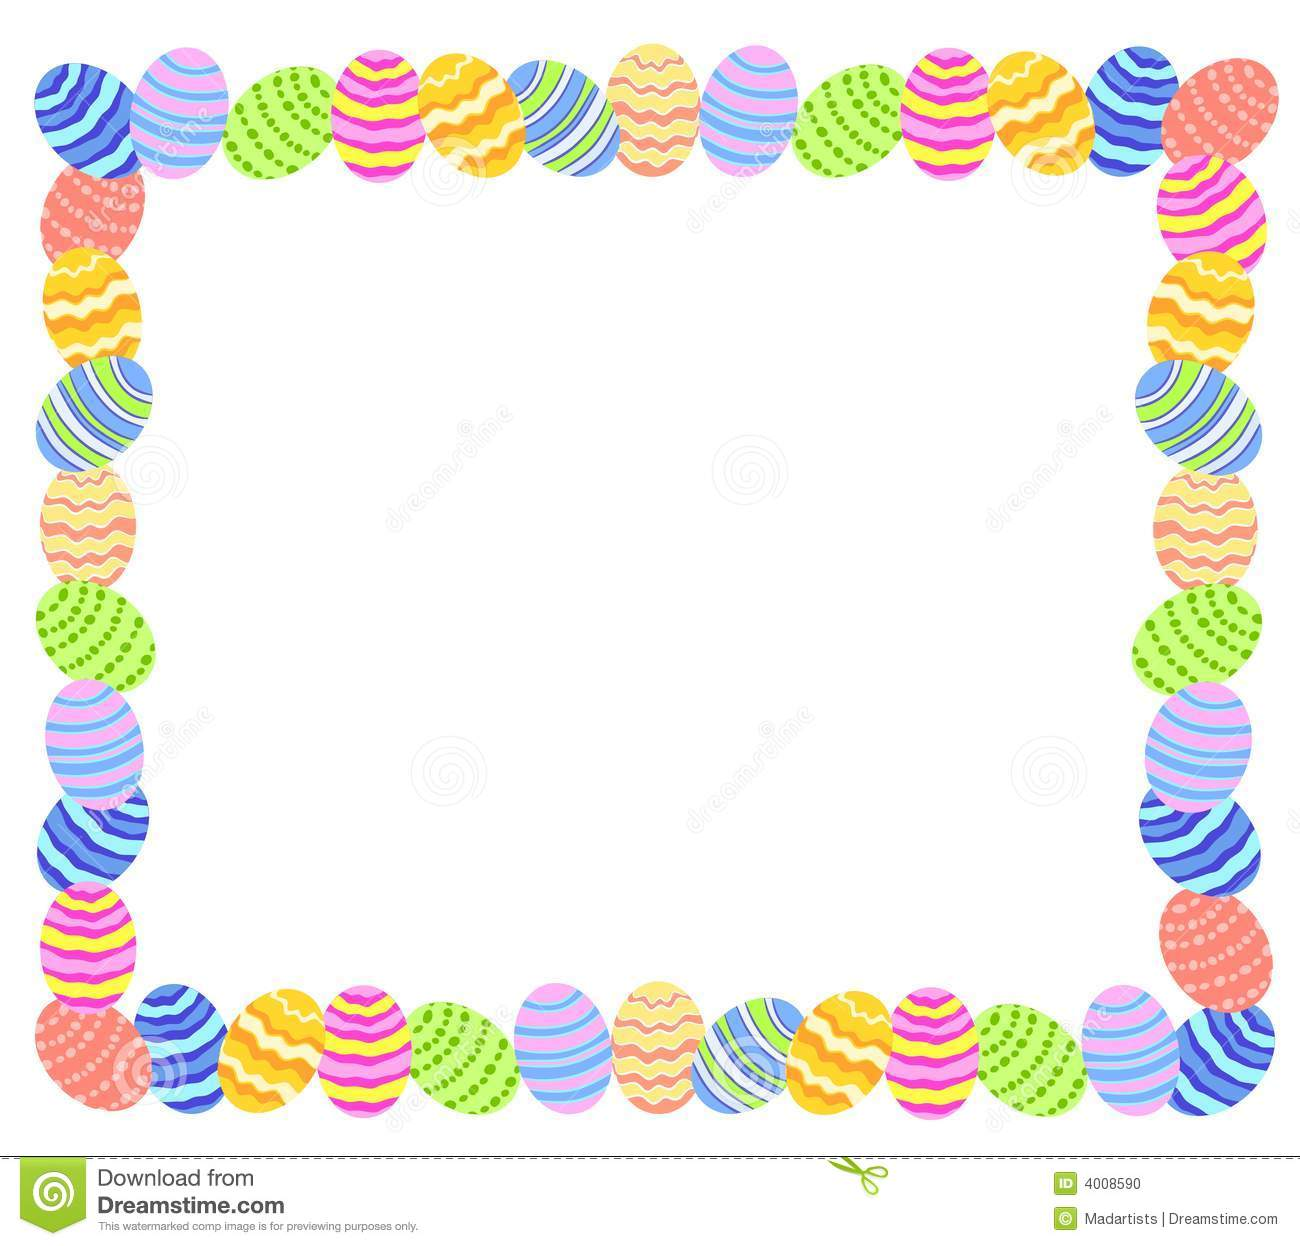 Easter Border   Free download on ClipArtMag (1300 x 1246 Pixel)